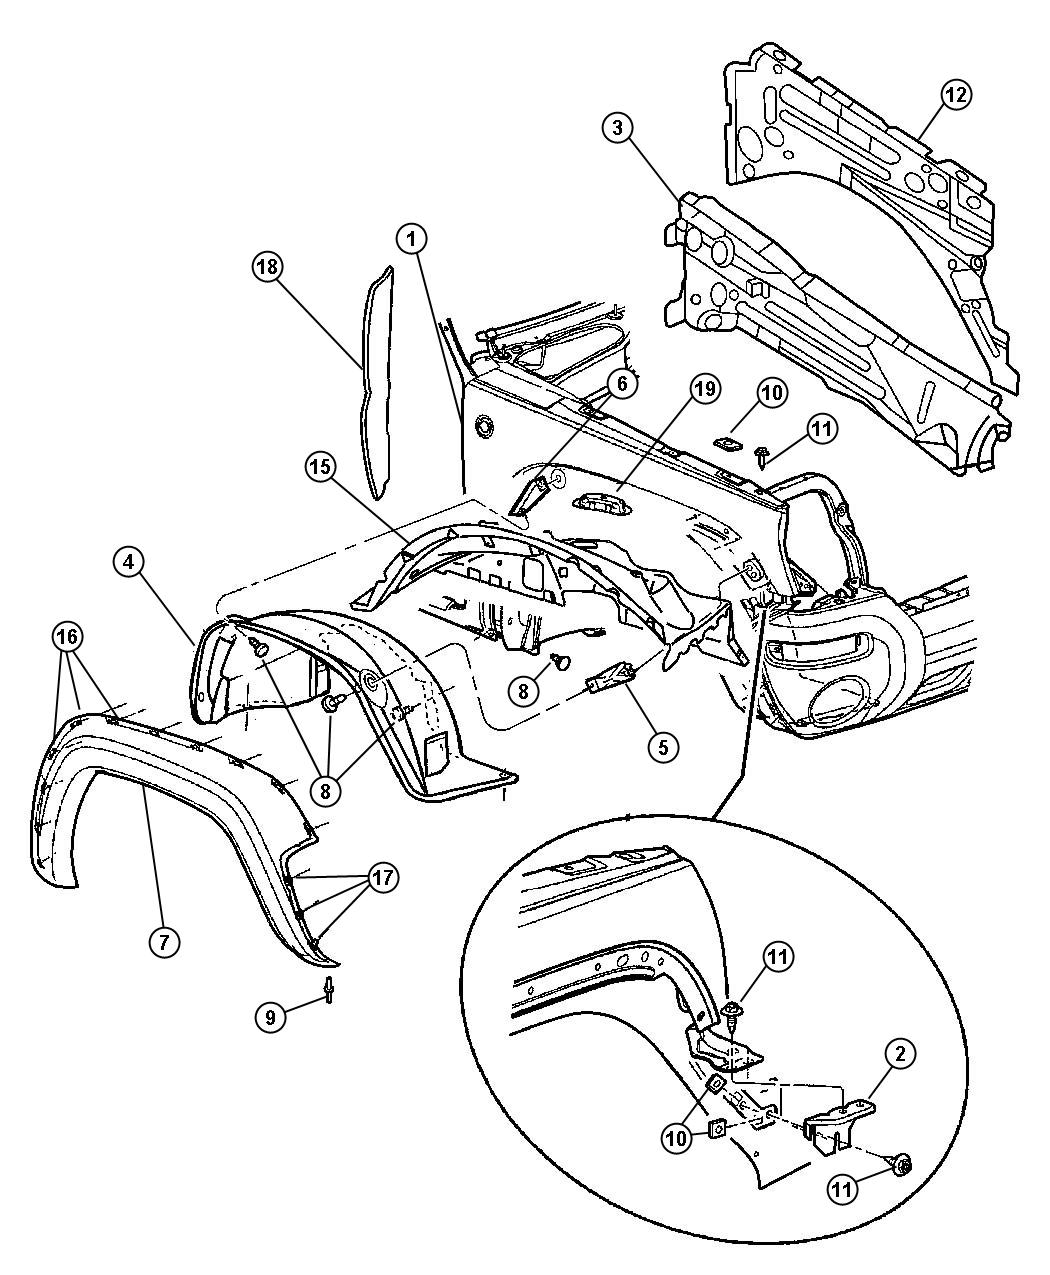 2004 jeep grand cherokee parts diagram  jeep  auto wiring